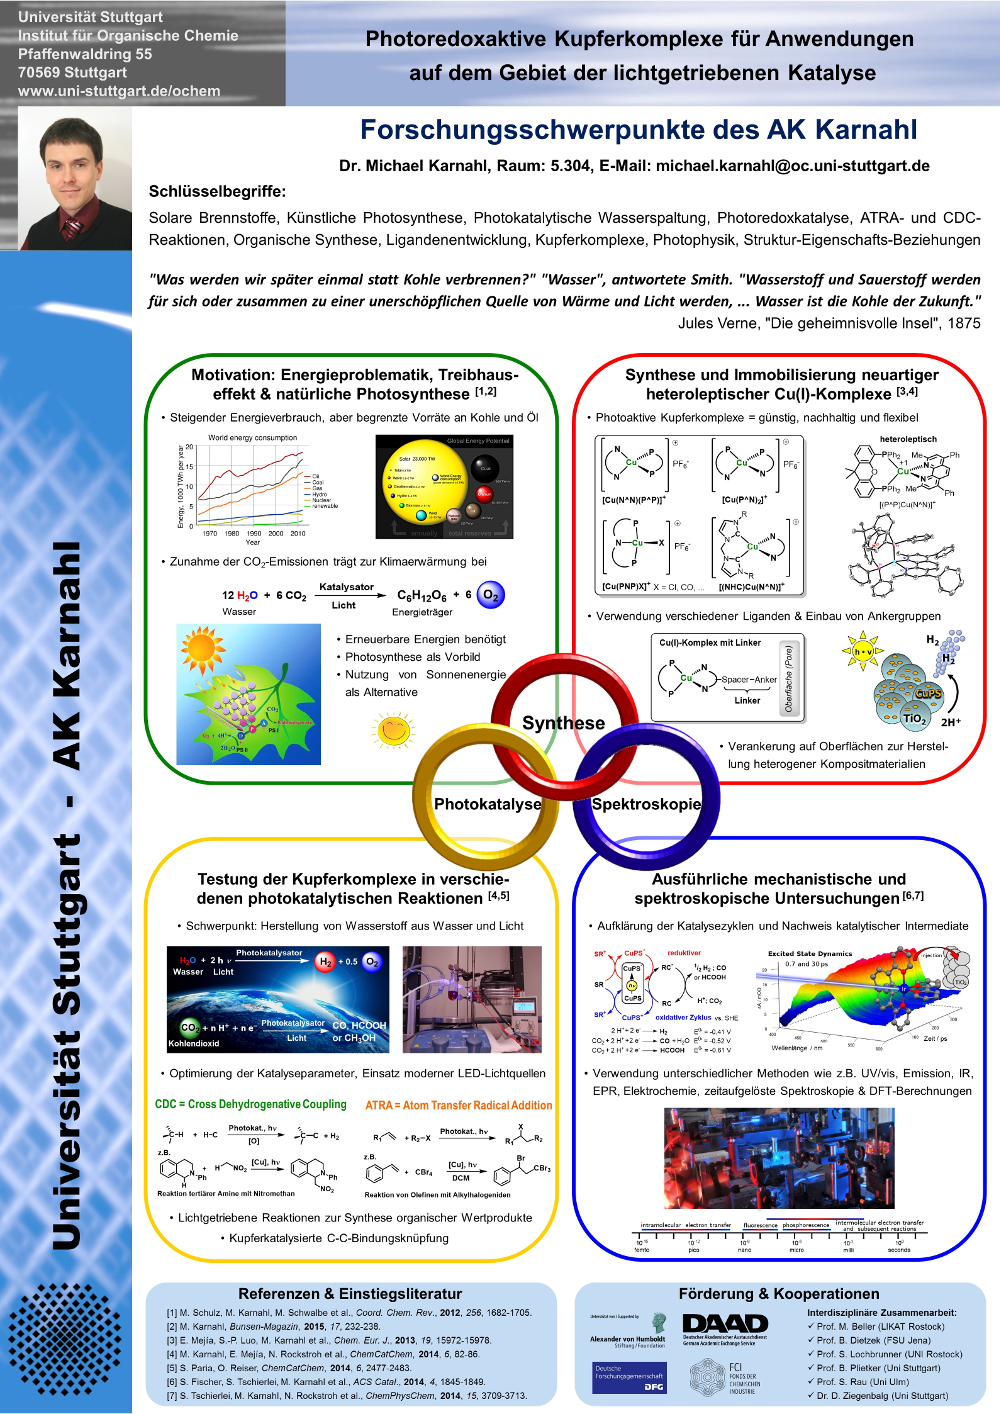 Poster Karnahl research group